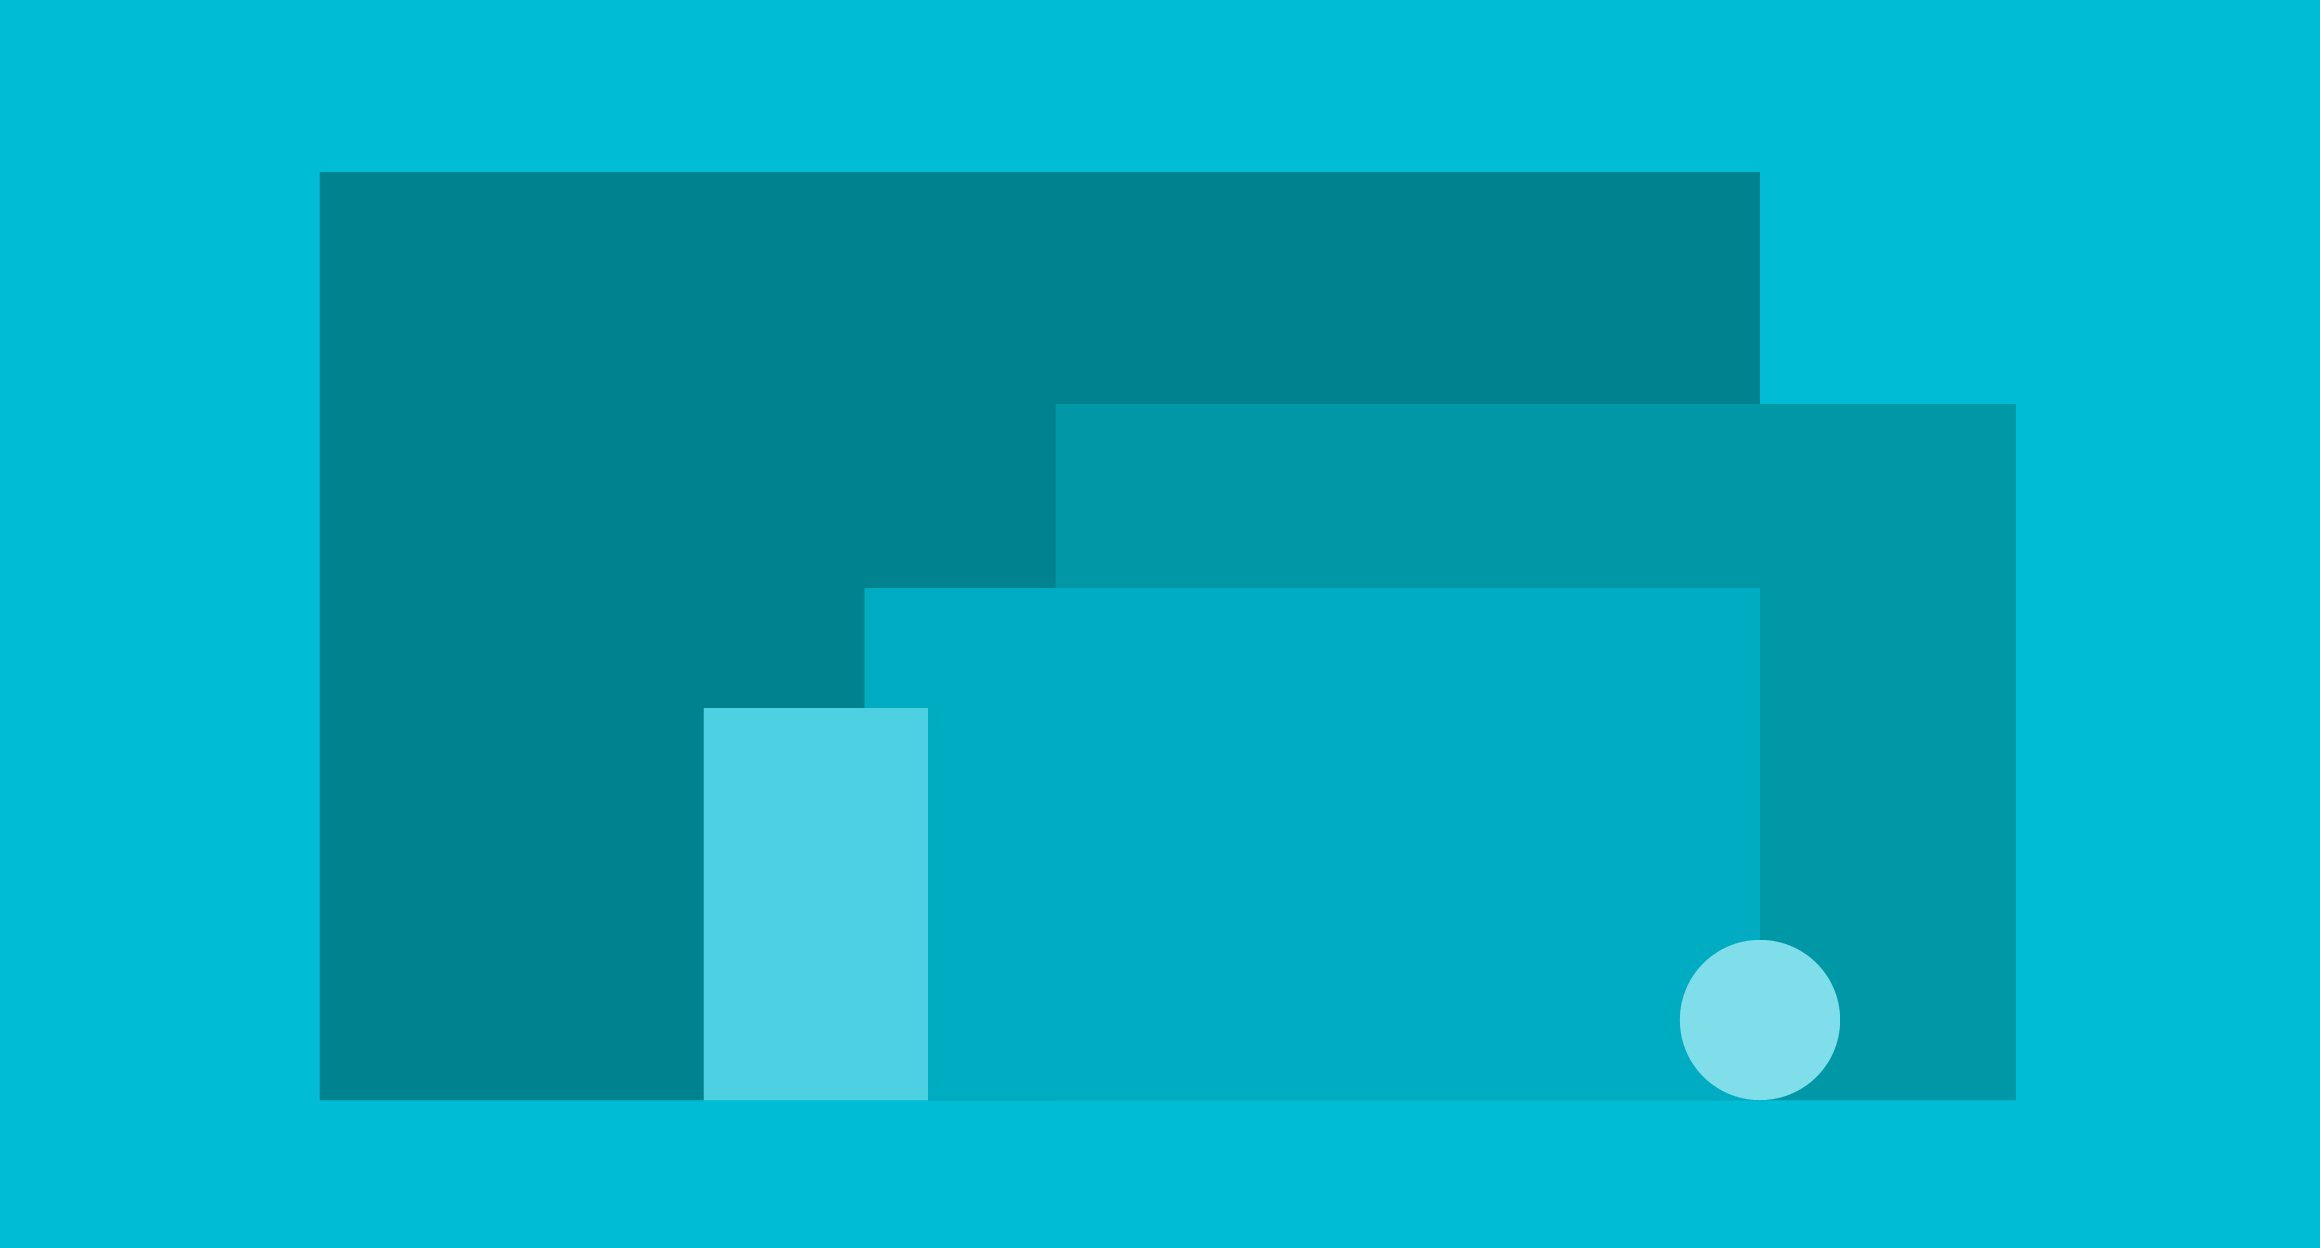 Introduction to Material Design by Google